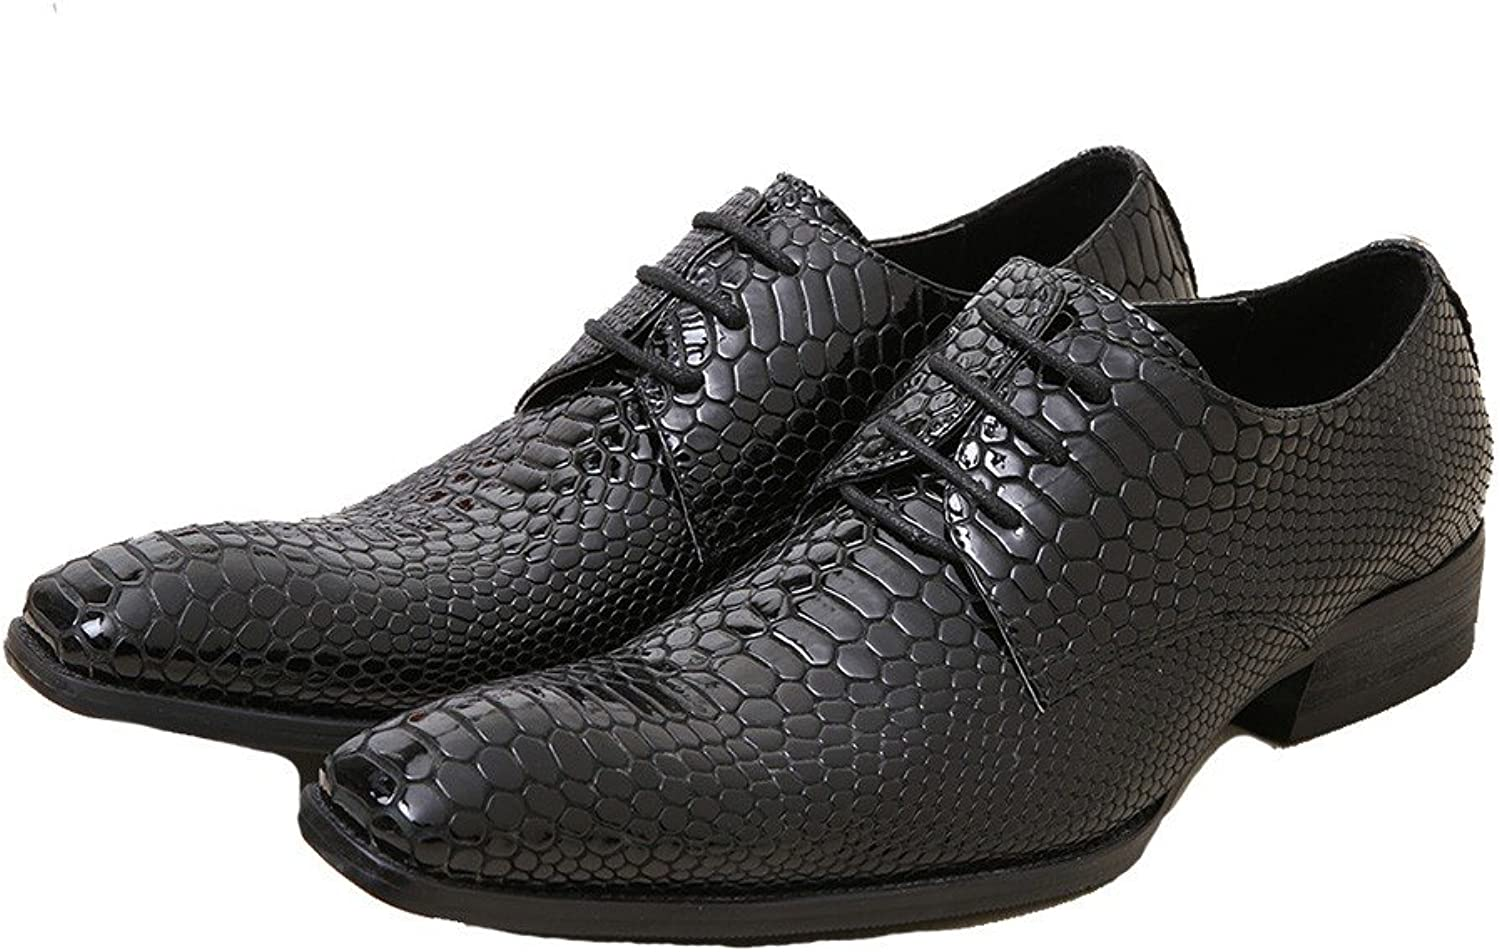 Cover Plus Size 5-11 New Black Alligator Print Genuine Leather Dress Oxfords Mens shoes